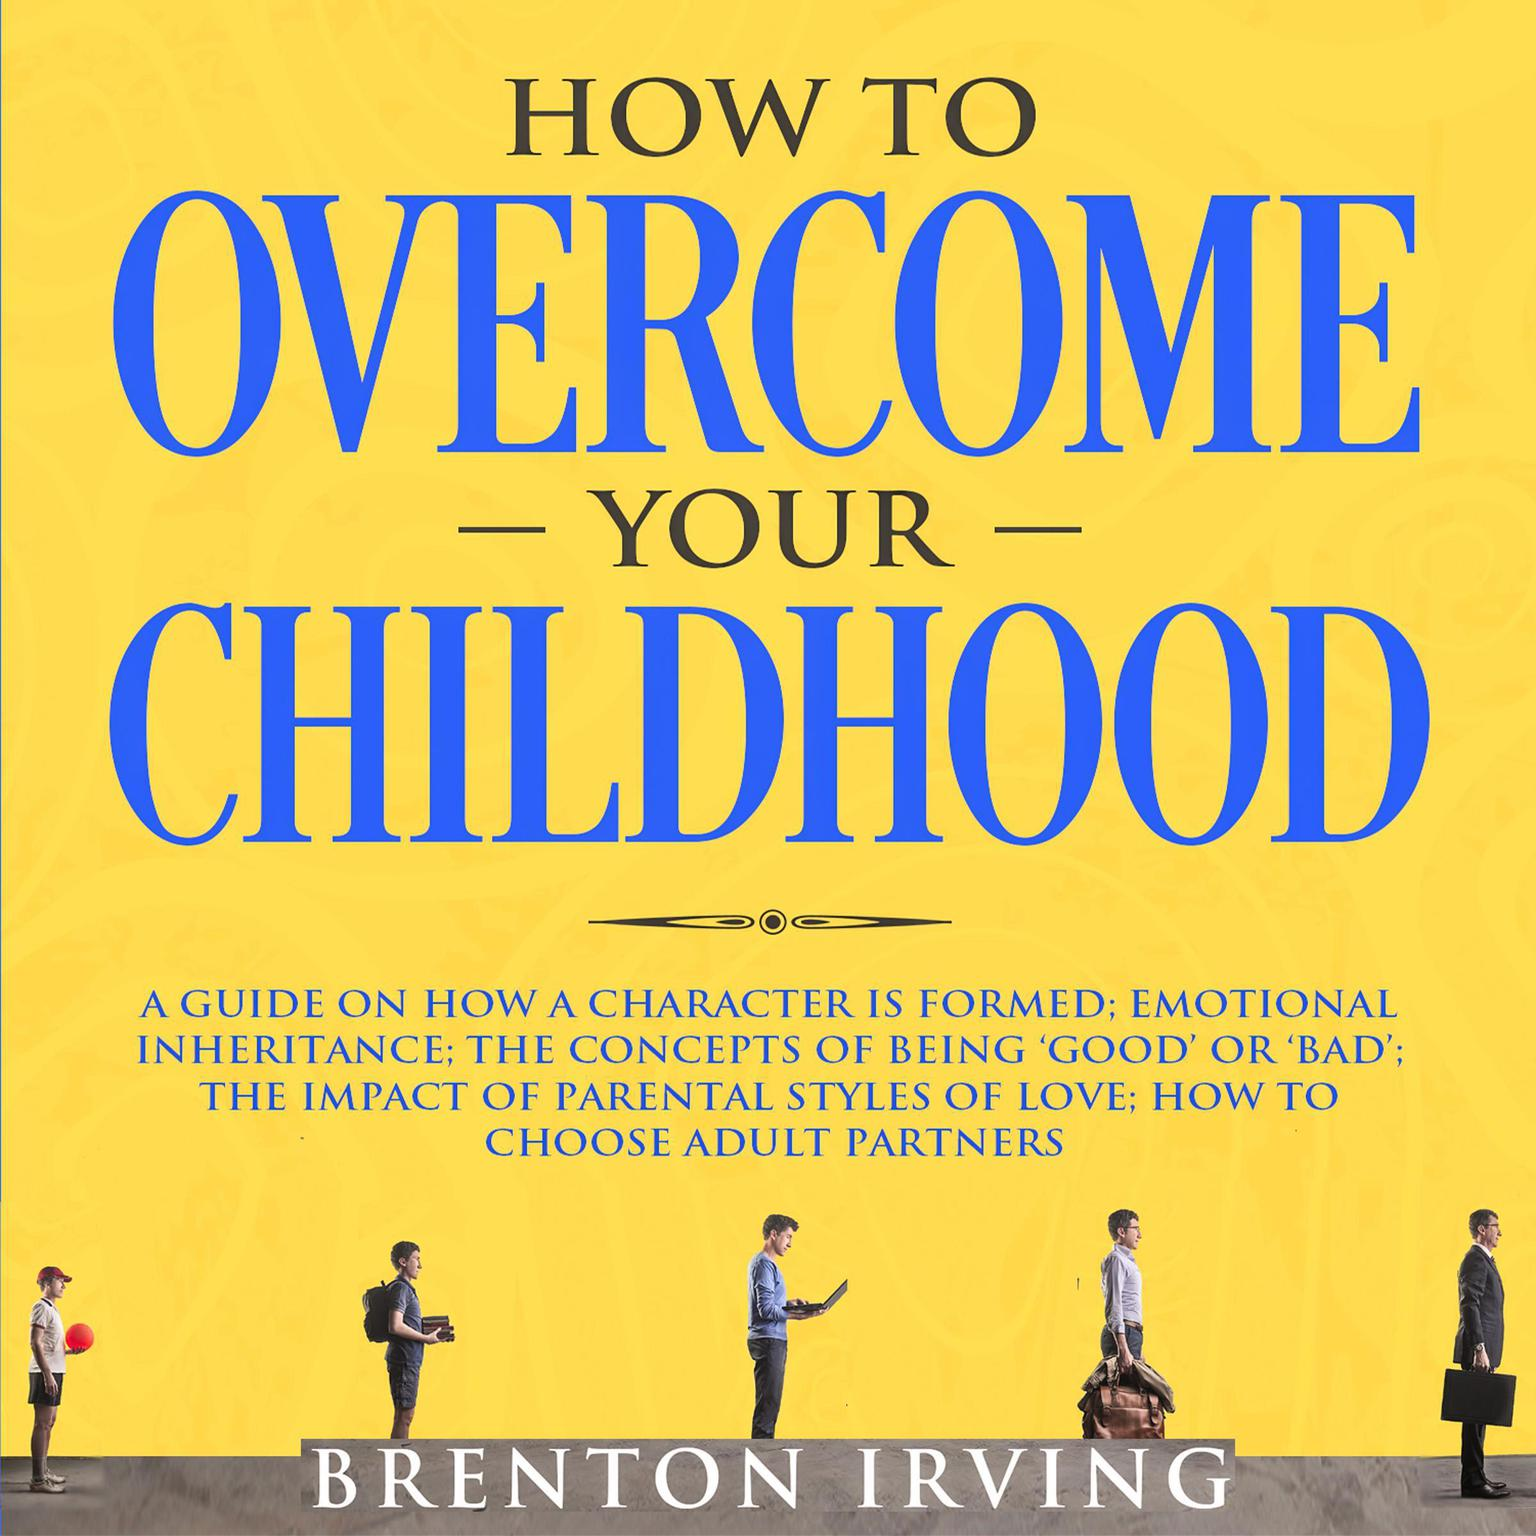 How to Overcome Your Childhood: A Guide on How a Character is Formed; Emotional Inheritance; the Concepts of Being 'Good' or 'Bad'; the Impact of Parental Styles of Love; How to Choose Adult partners Audiobook, by Brenton Irving